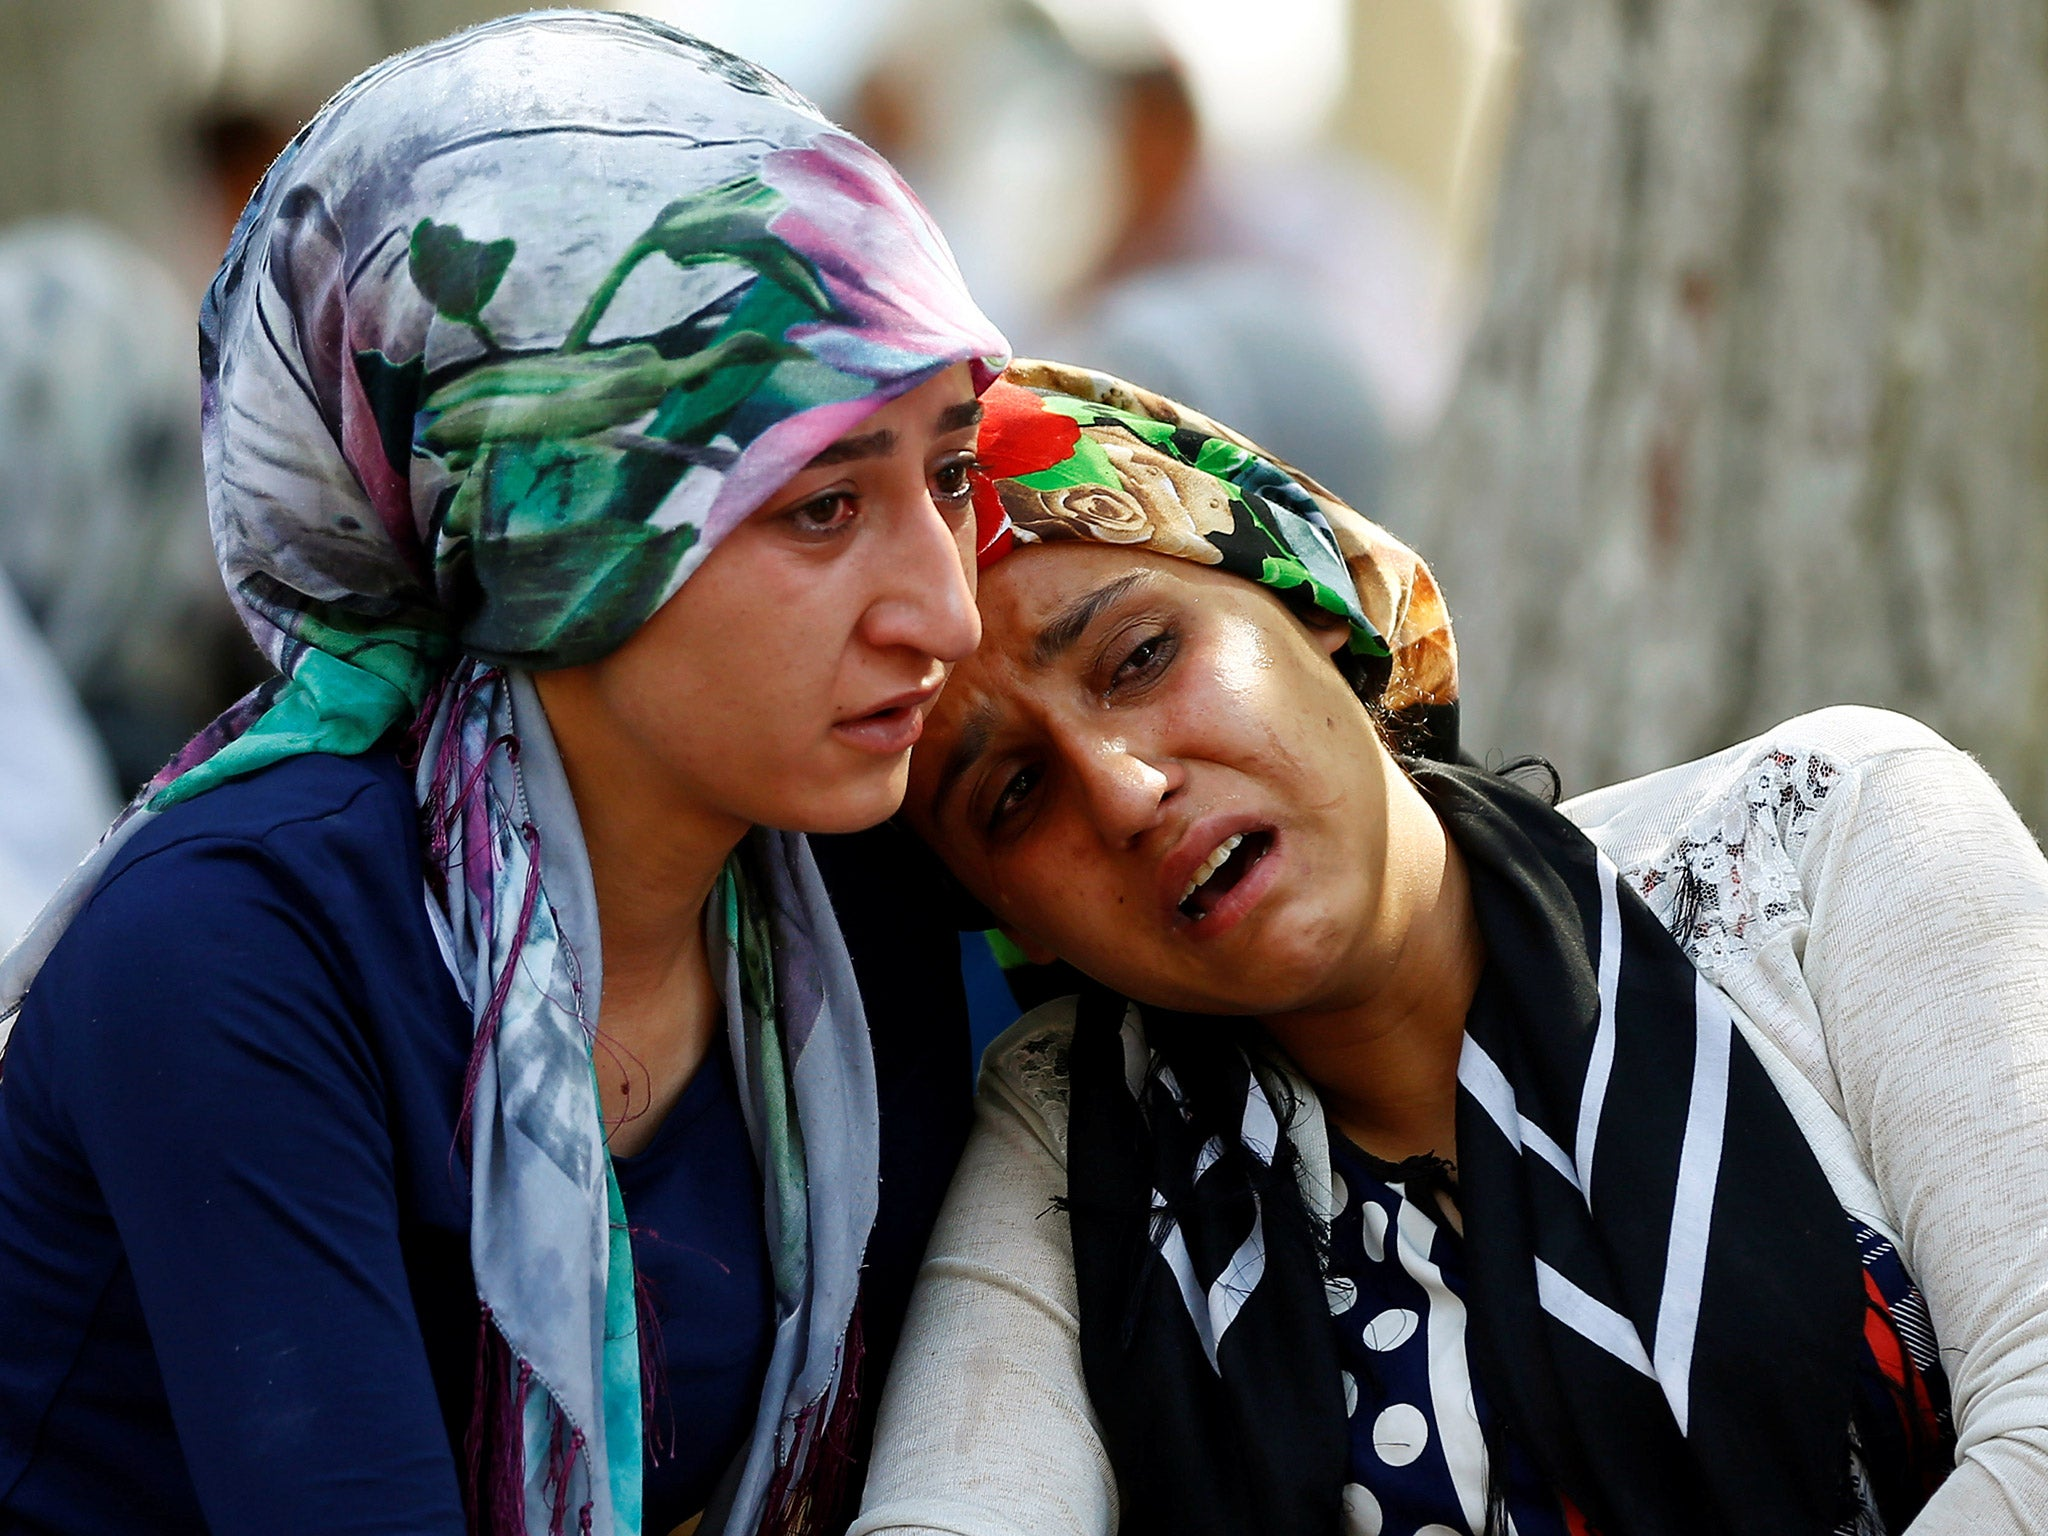 Turkey wedding bombing: Isis child suicide bomber was one of terror group's 'cubs of the caliphate'